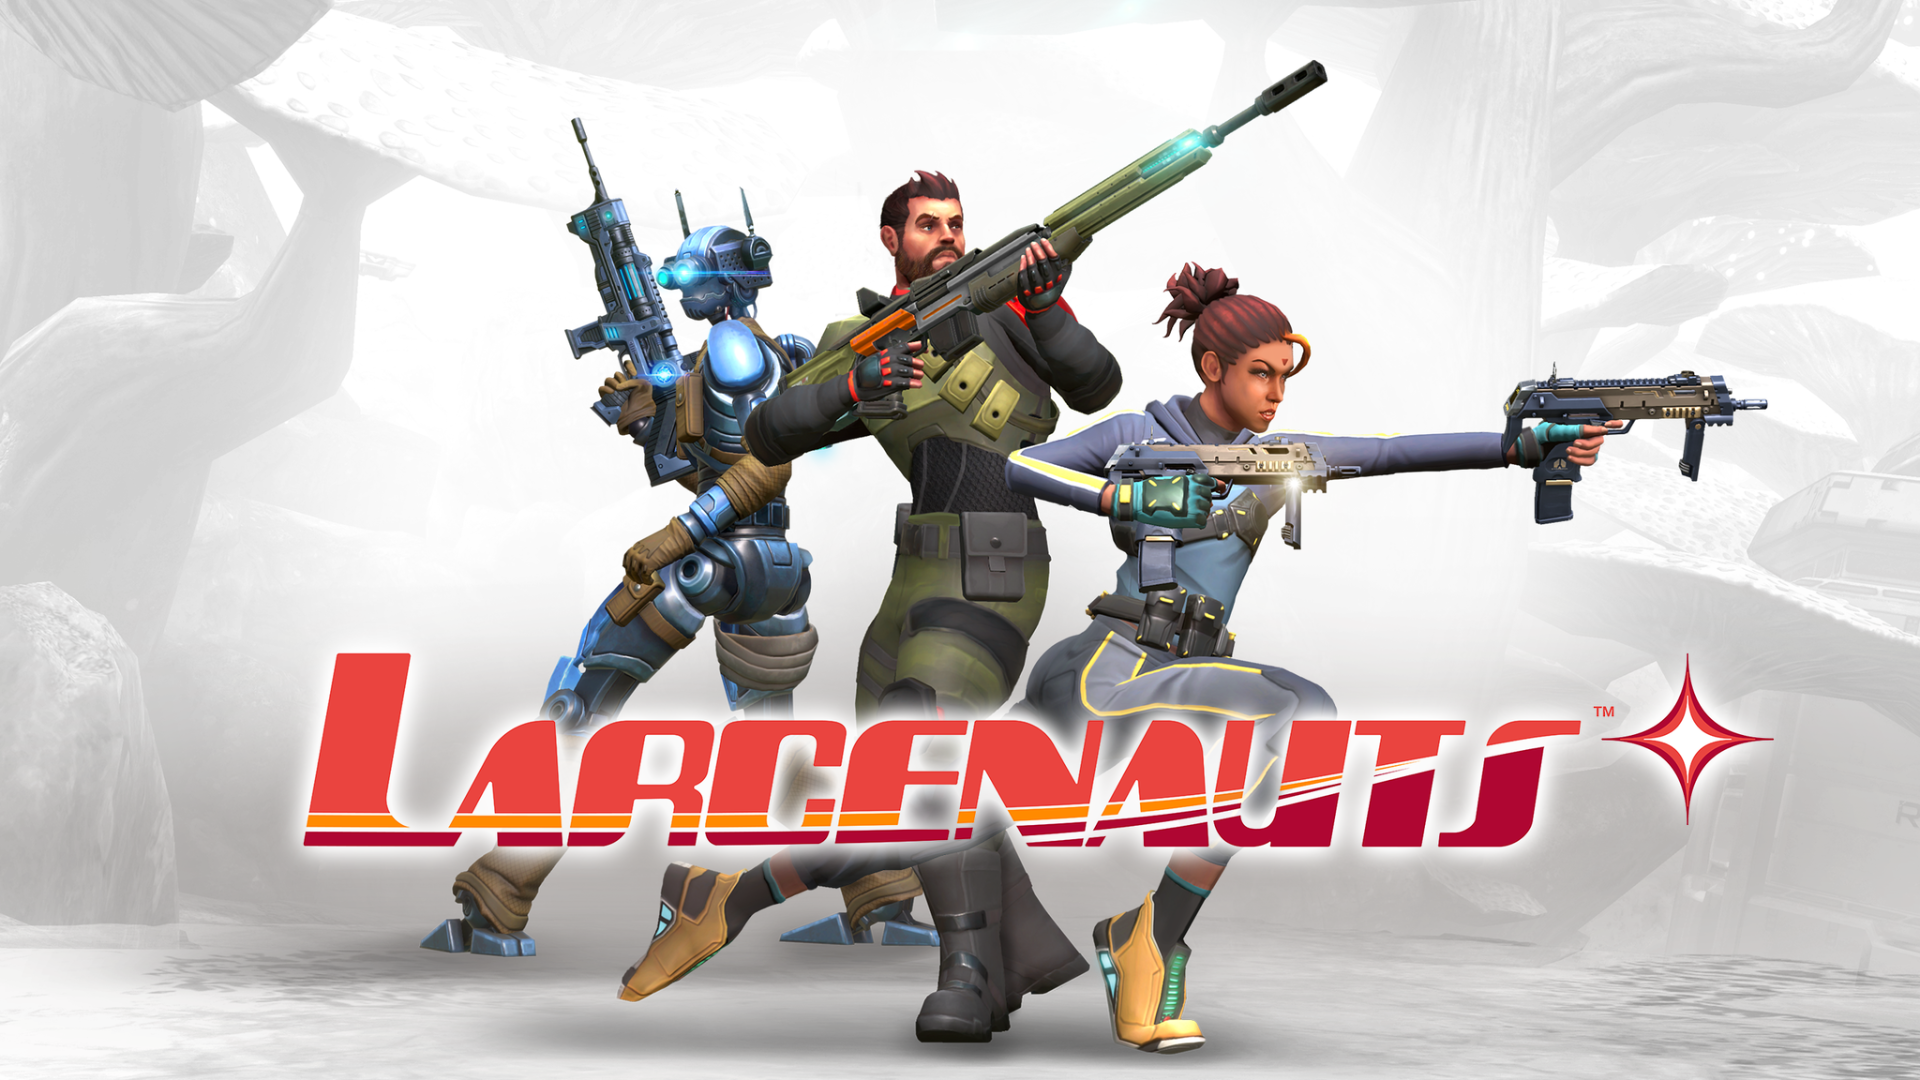 Larcenauts: Immersion Overload Update Adds Key Immersive Features